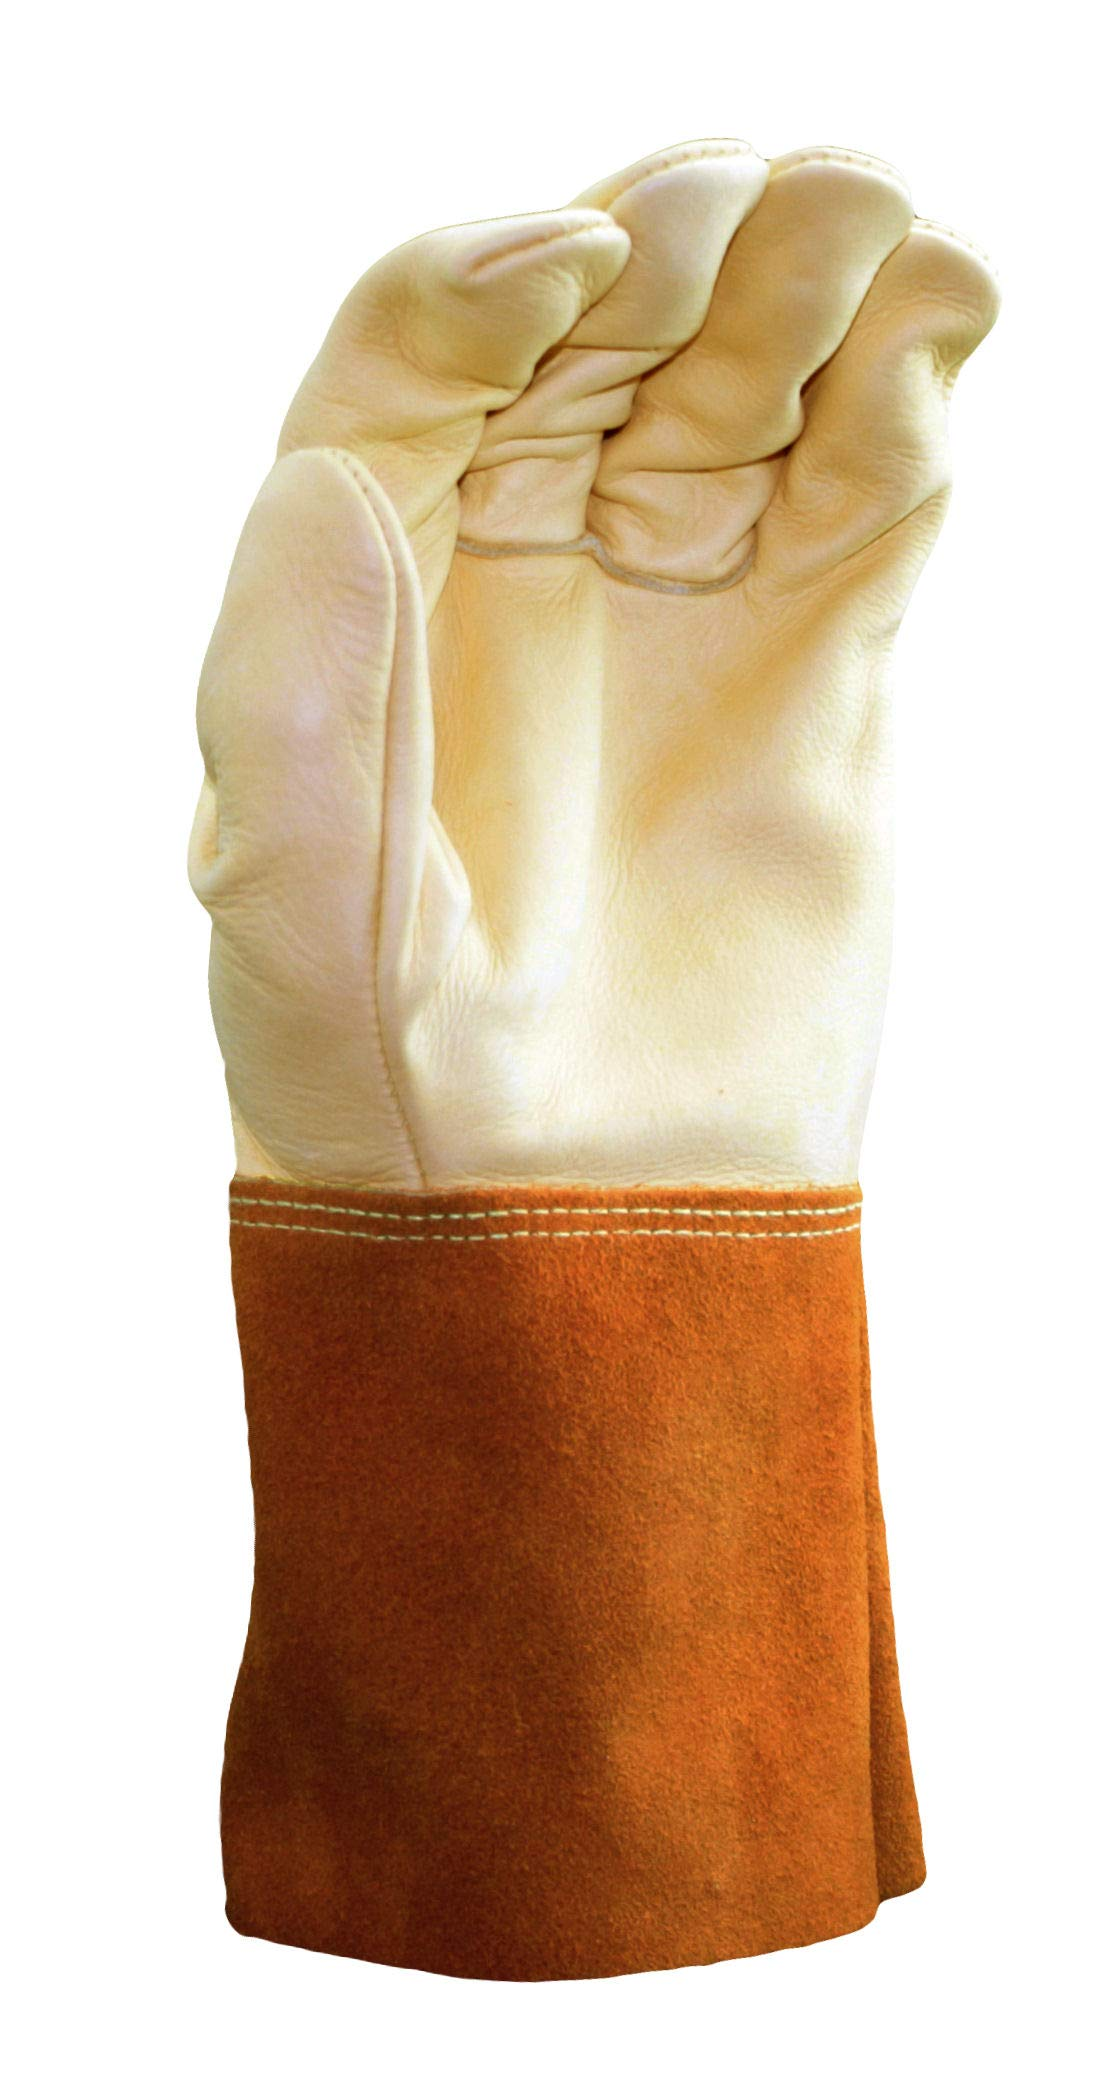 Cowhide Welder Gloves with Leather Gauntlet Cuff, Premium Grade | Beige/Orange Color, Unlined Lining, Kevlar Stitching Material - (Pack of 12) by Stauffer Glove & Safety (Image #2)